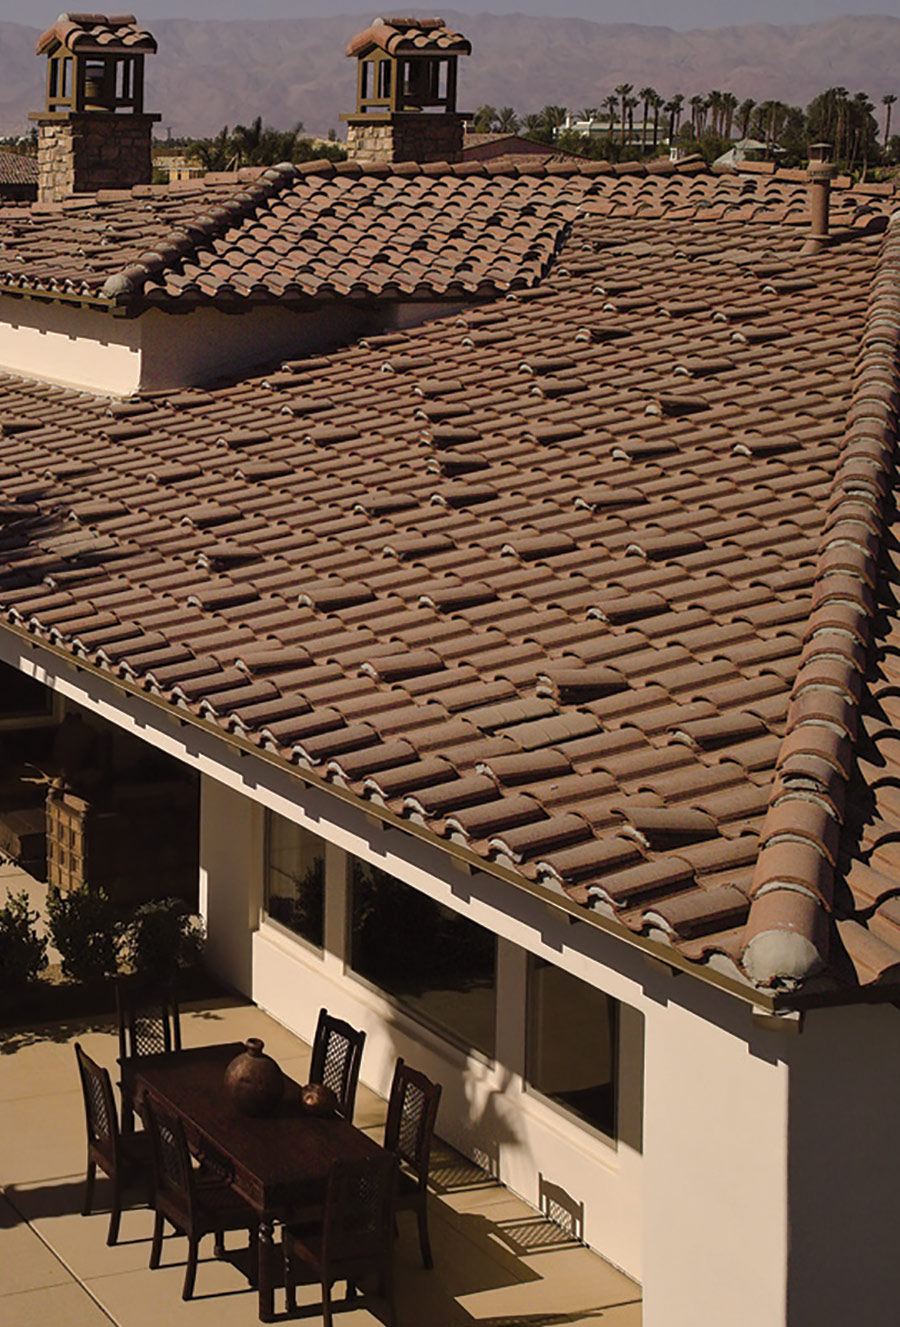 Boosted Roof Tiles - 20 Percent